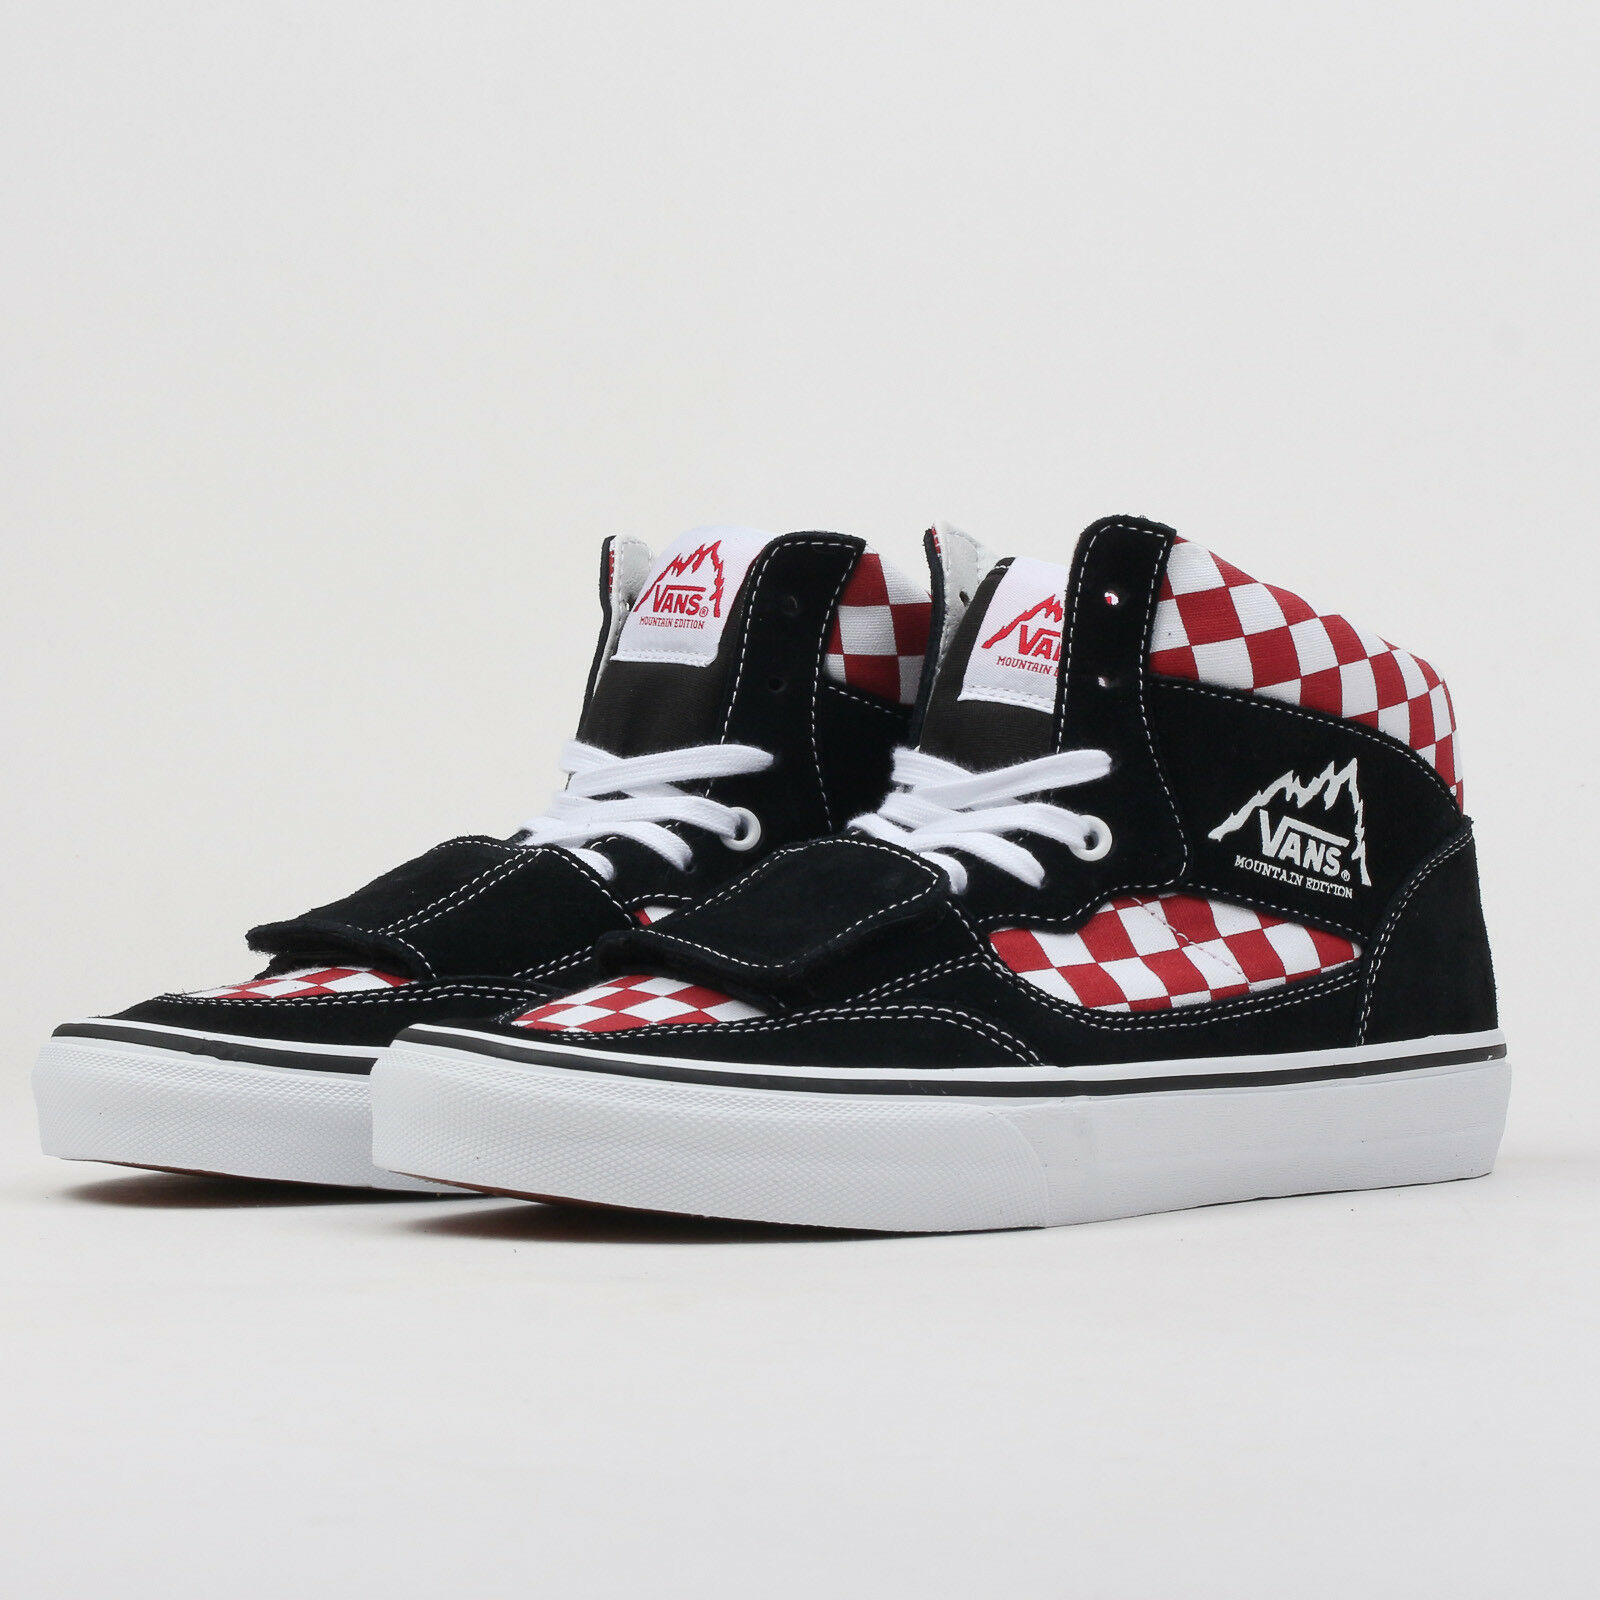 Vans Mountain Edition (checkerboard) 44,5, schwarz / ROT EU 44,5, (checkerboard) Männer c8977f